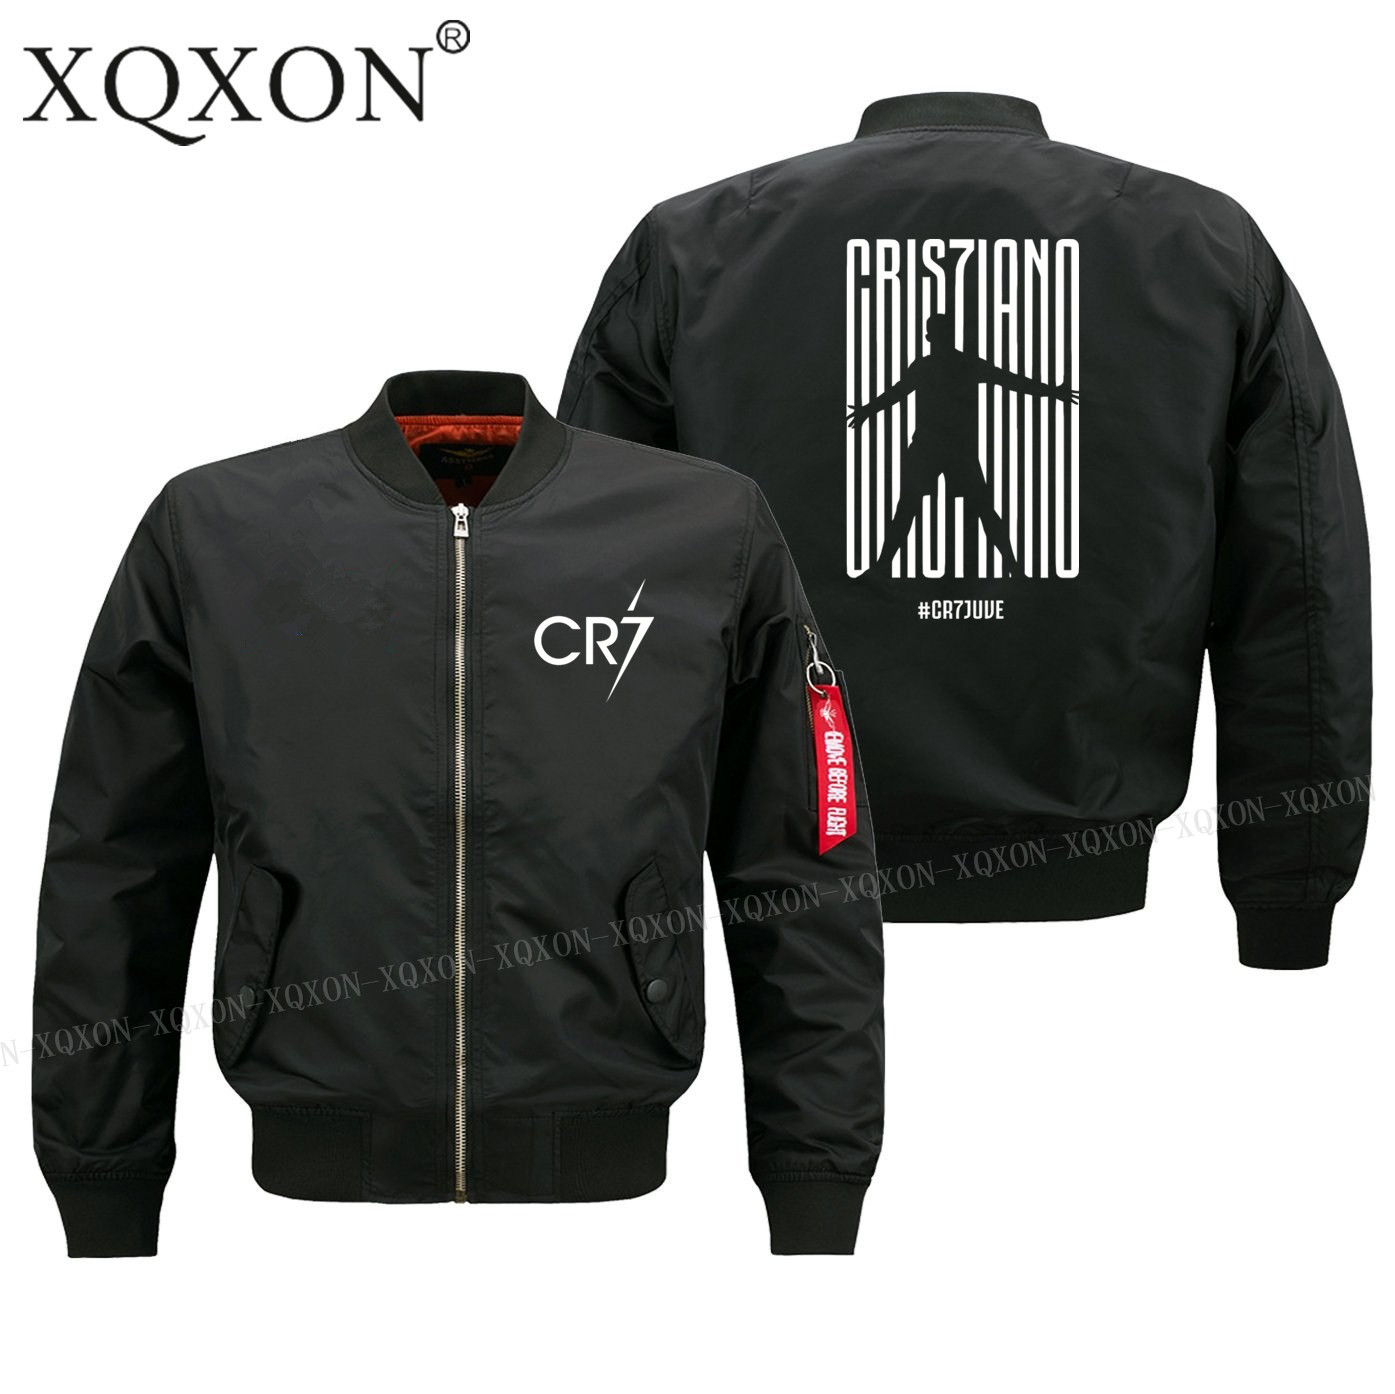 XQXON Autumn winter new design Ronaldo CR7 Juventus FC Serie A #CR7 Turin man jacket High Quality men Coats Jackets S 6XL 193-in Jackets from Men's Clothing